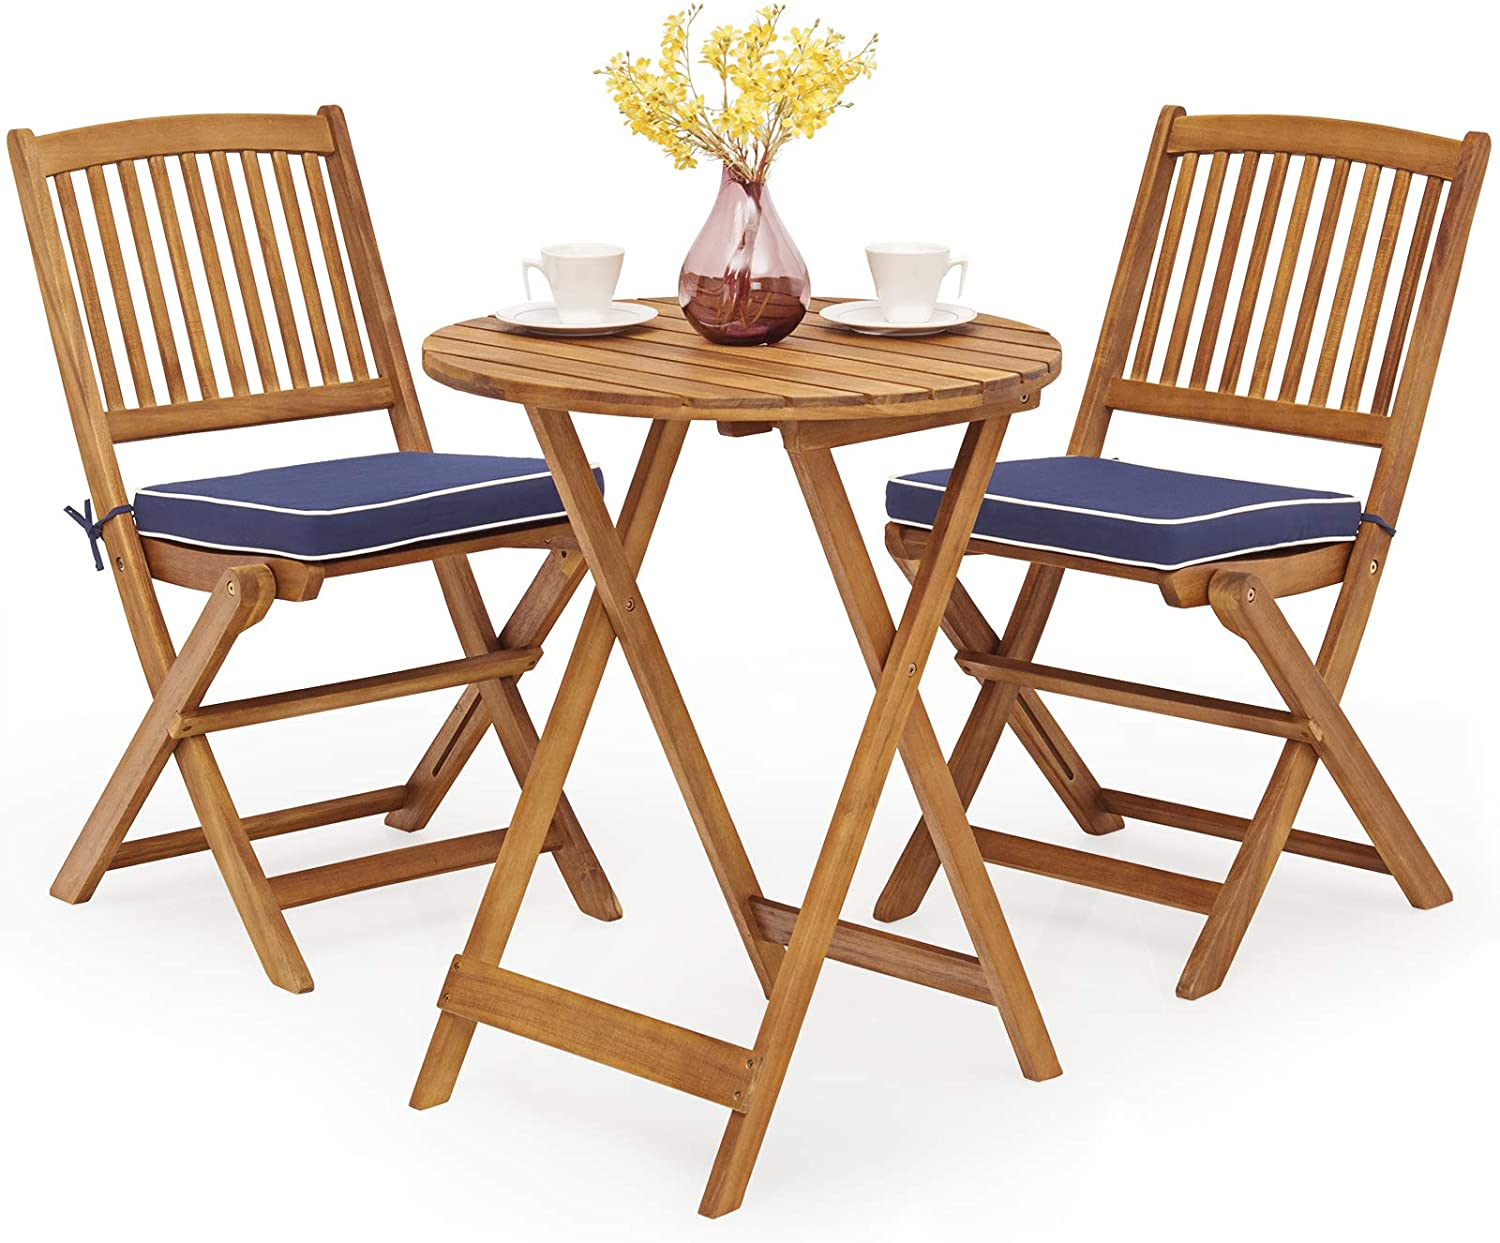 Tangkula 3 PCS Fixed price for sale Patio Max 87% OFF Folding Bistro Outdoor Acacia Wood Cha Set